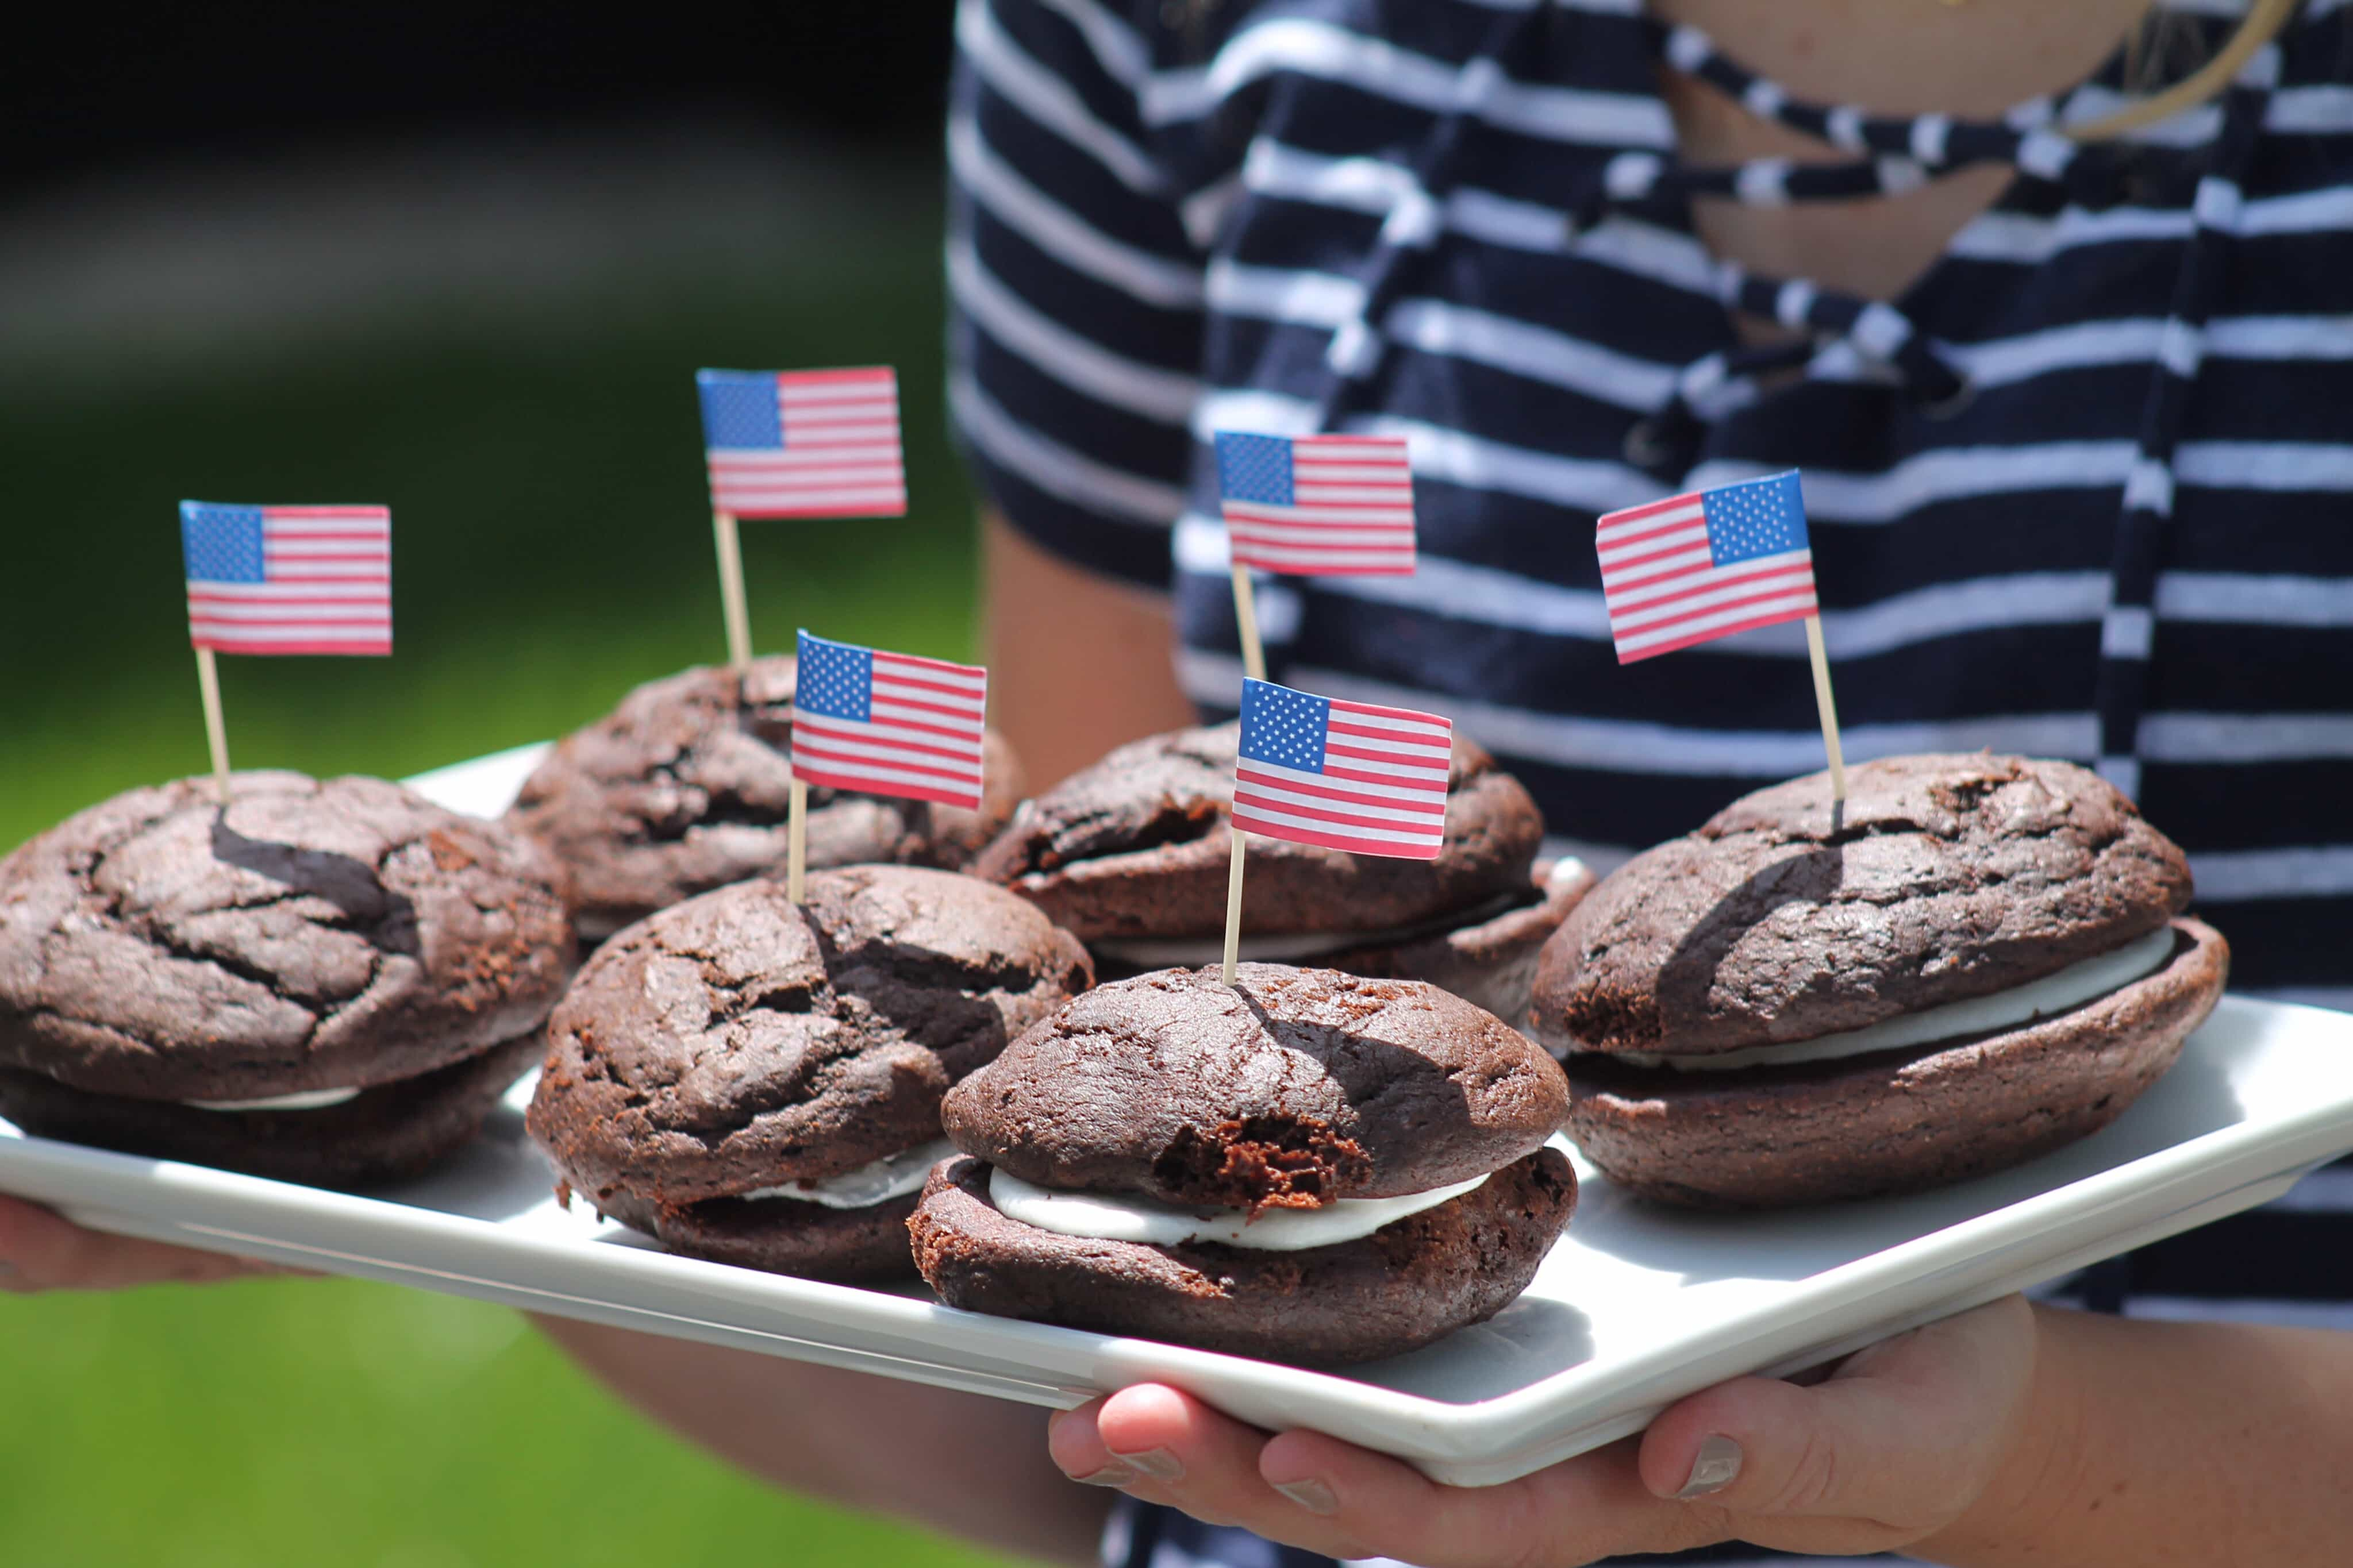 Whoopie Pies with tiny American Flags-Navy and white stripes